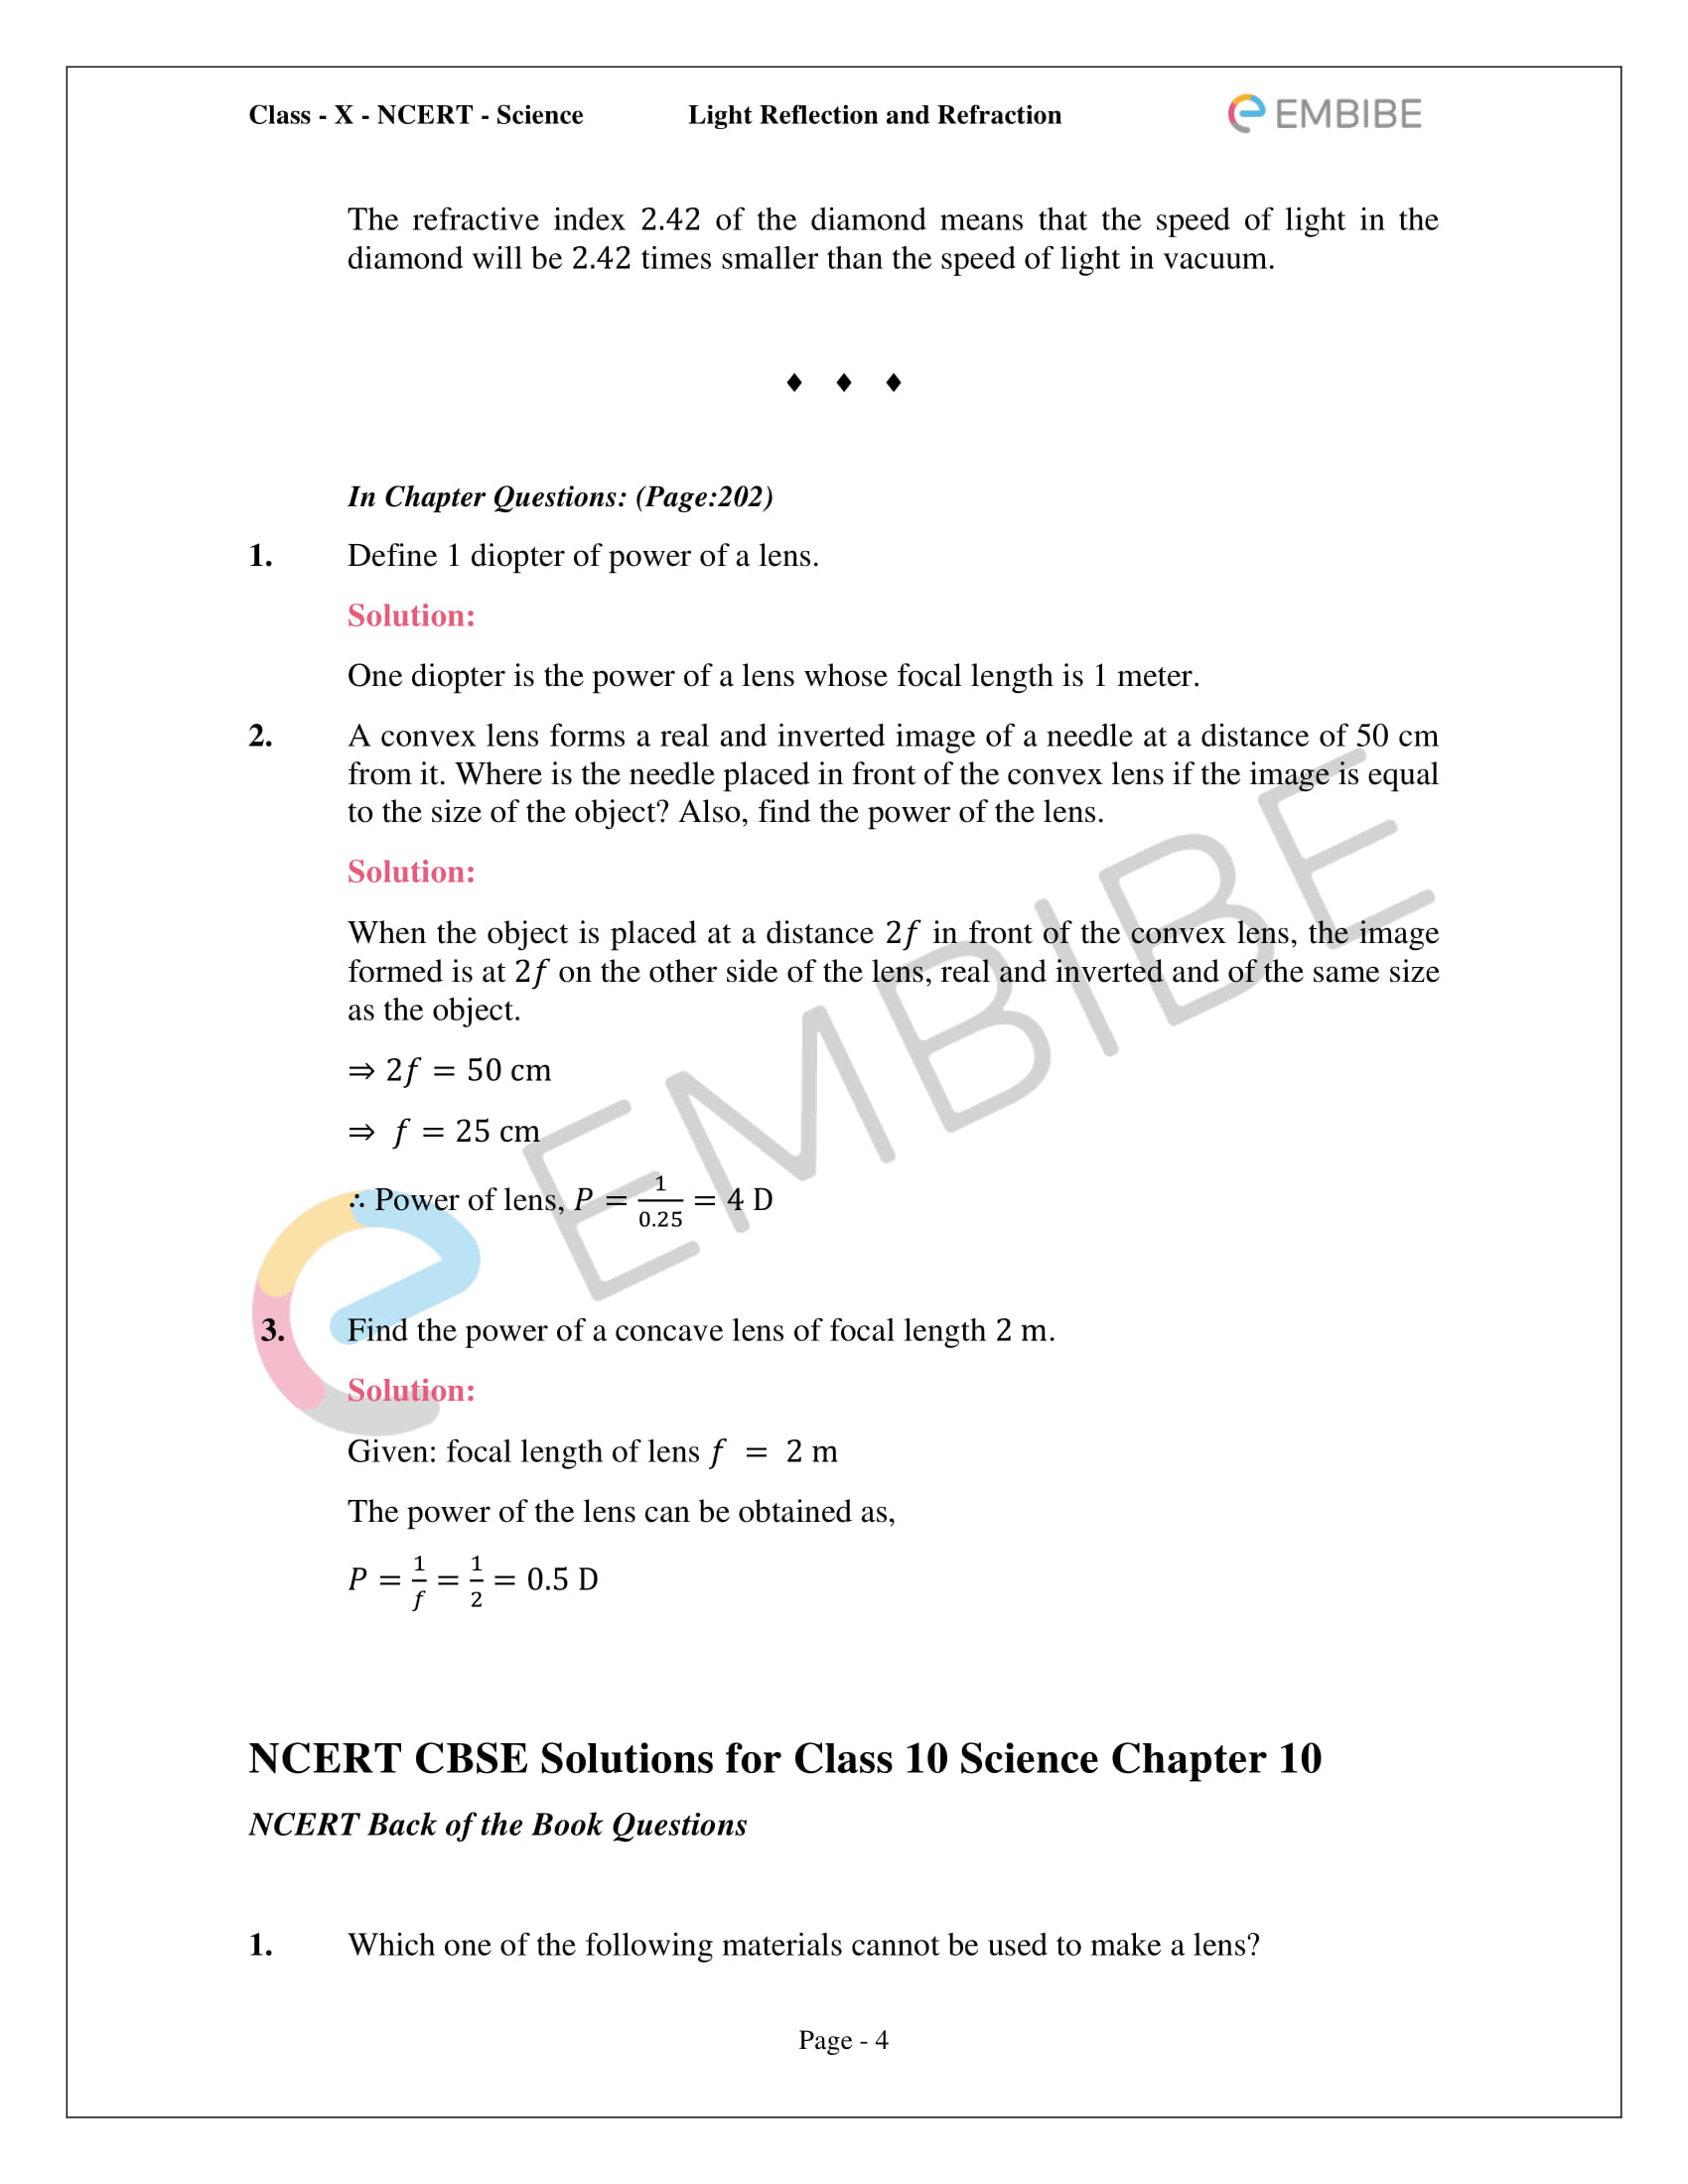 CBSE NCERT Solutions For Class 10 Science Chapter 10 - Light Reflection and Refraction - 4